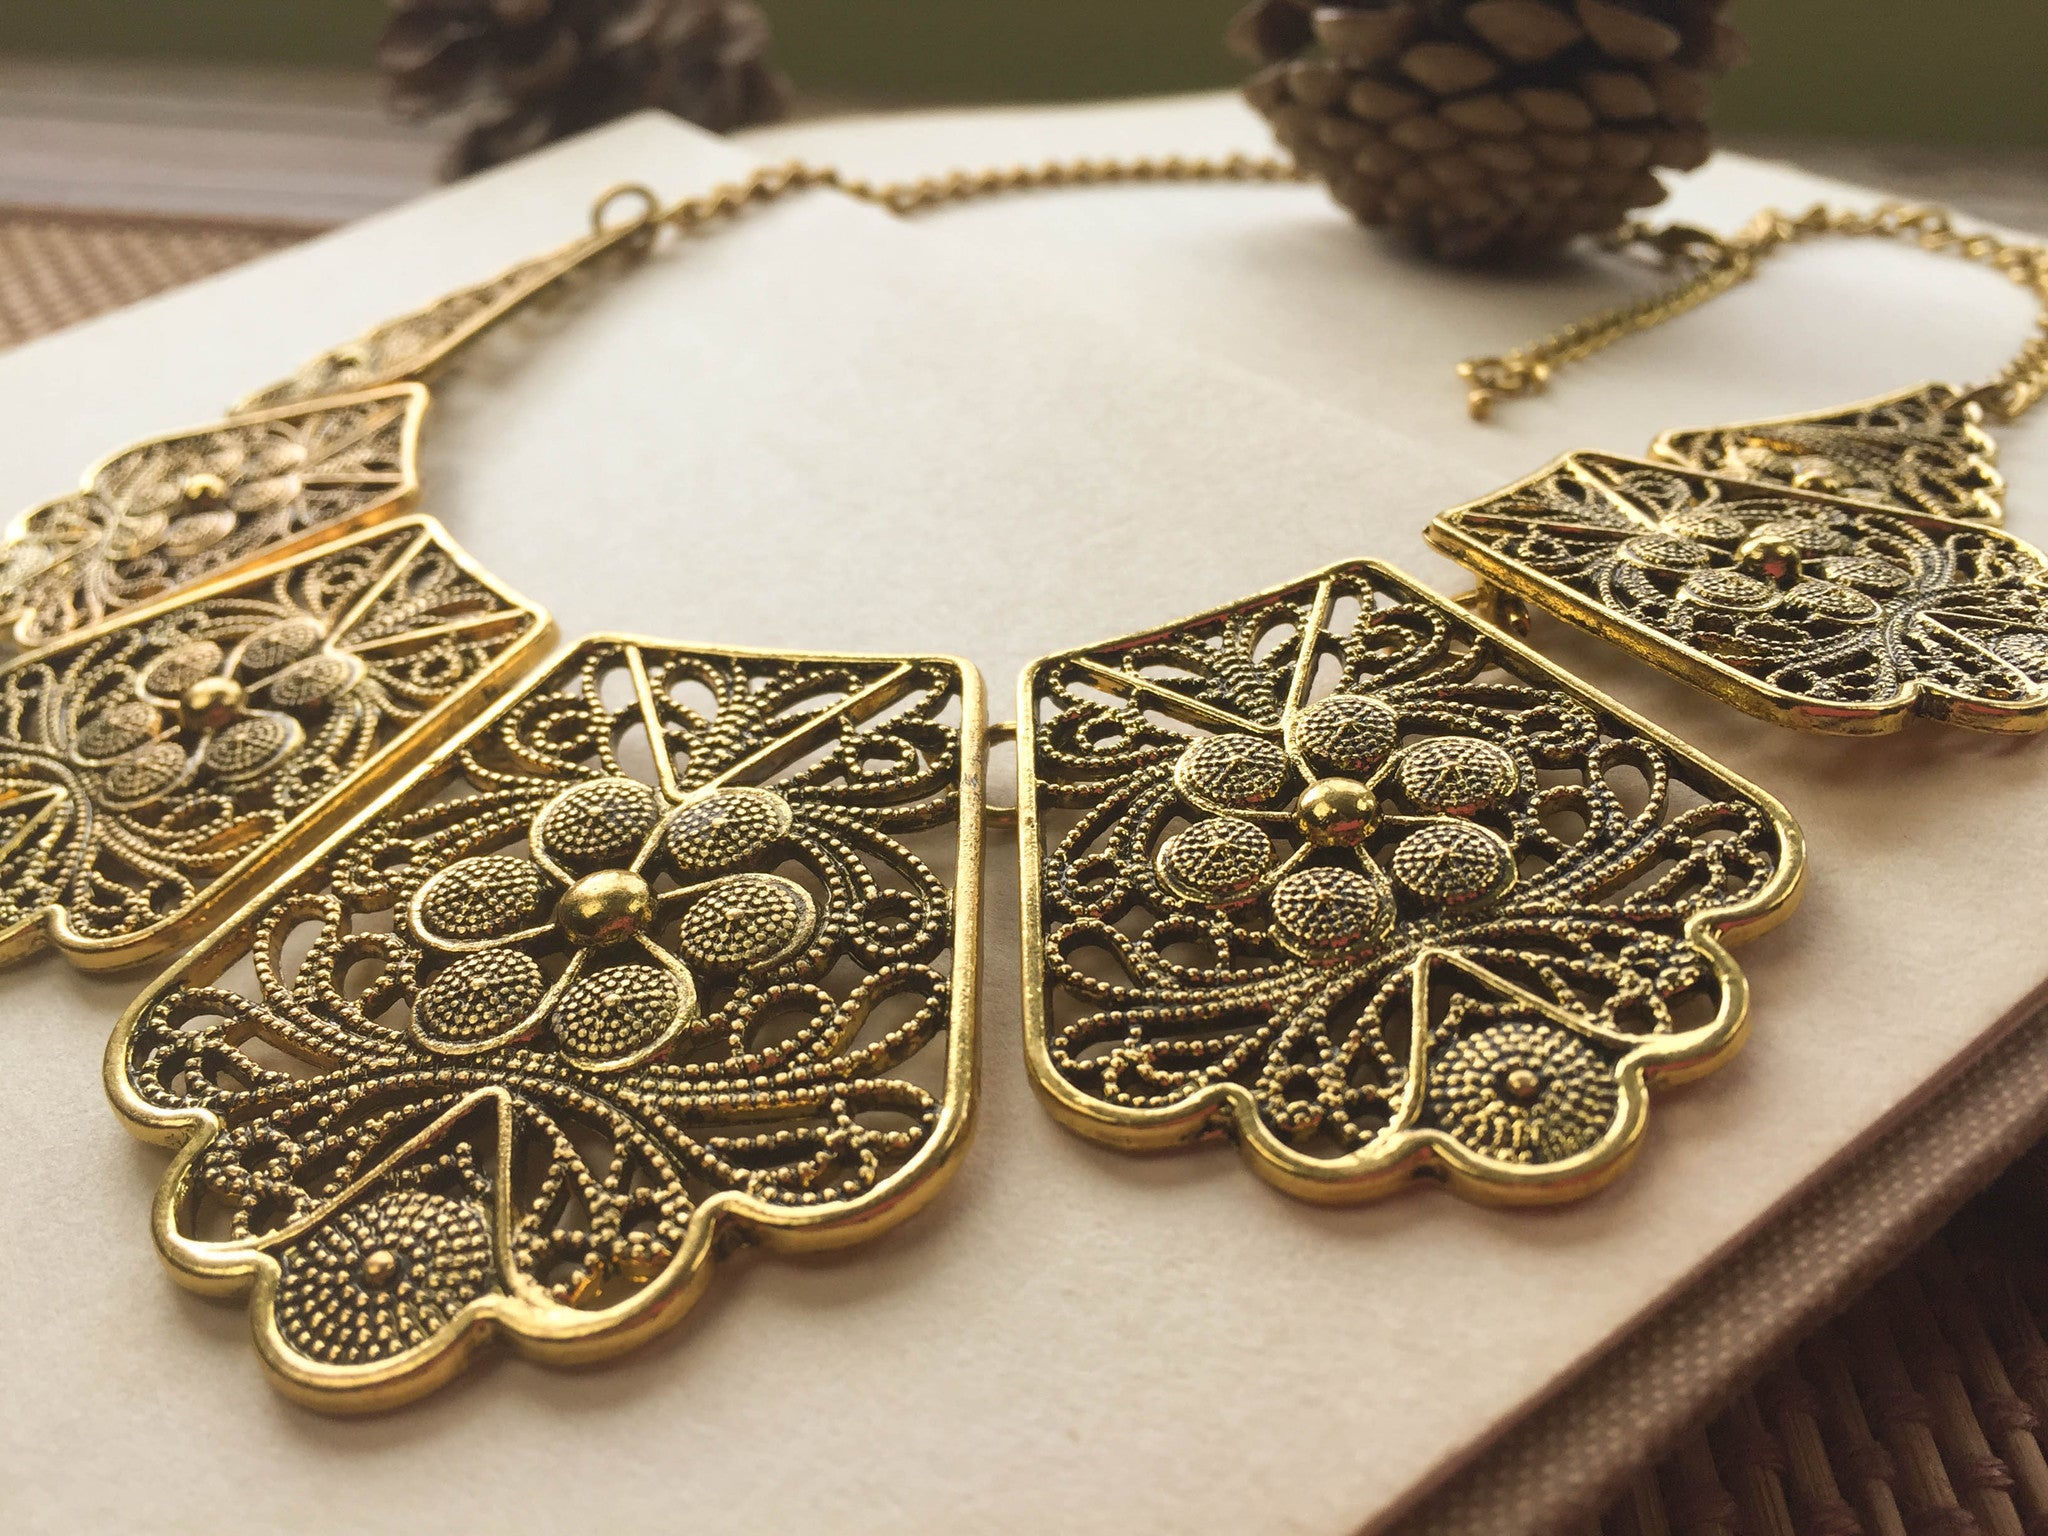 products deco necklace link vintage gold chain art